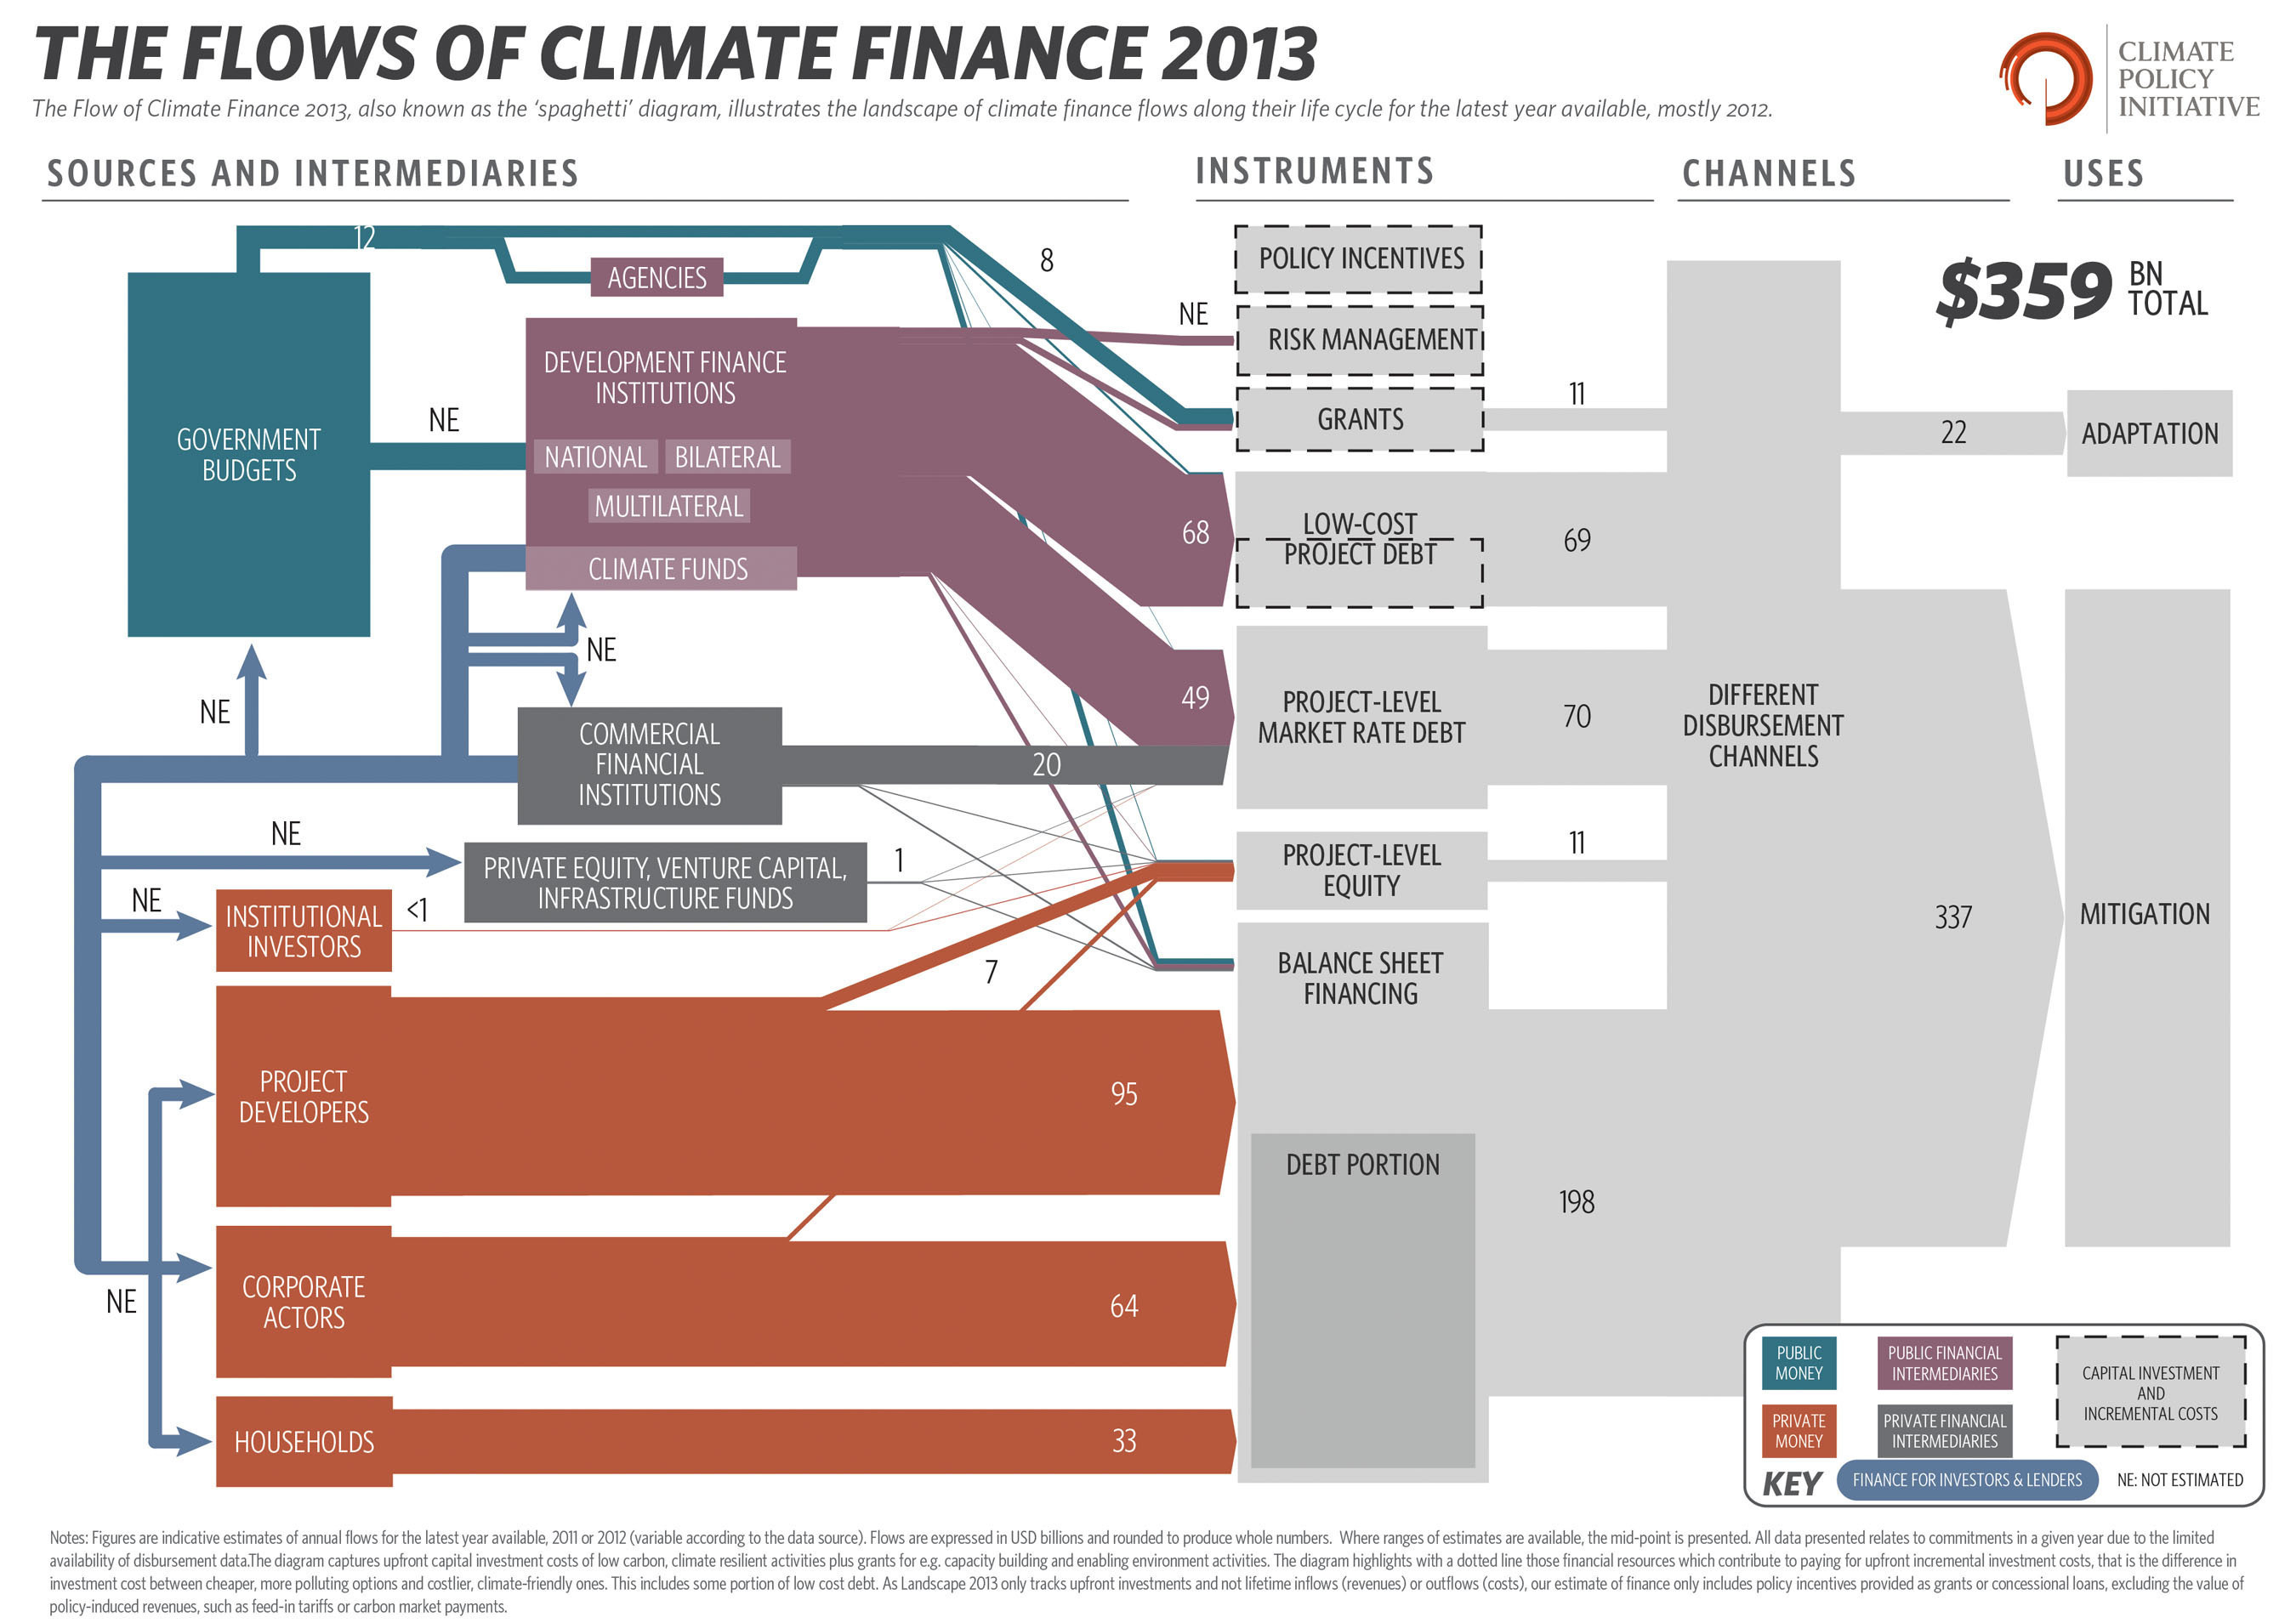 Climate Change Investment Totals USD $359 Billion Worldwide, far short of the need, and falling further behind ...